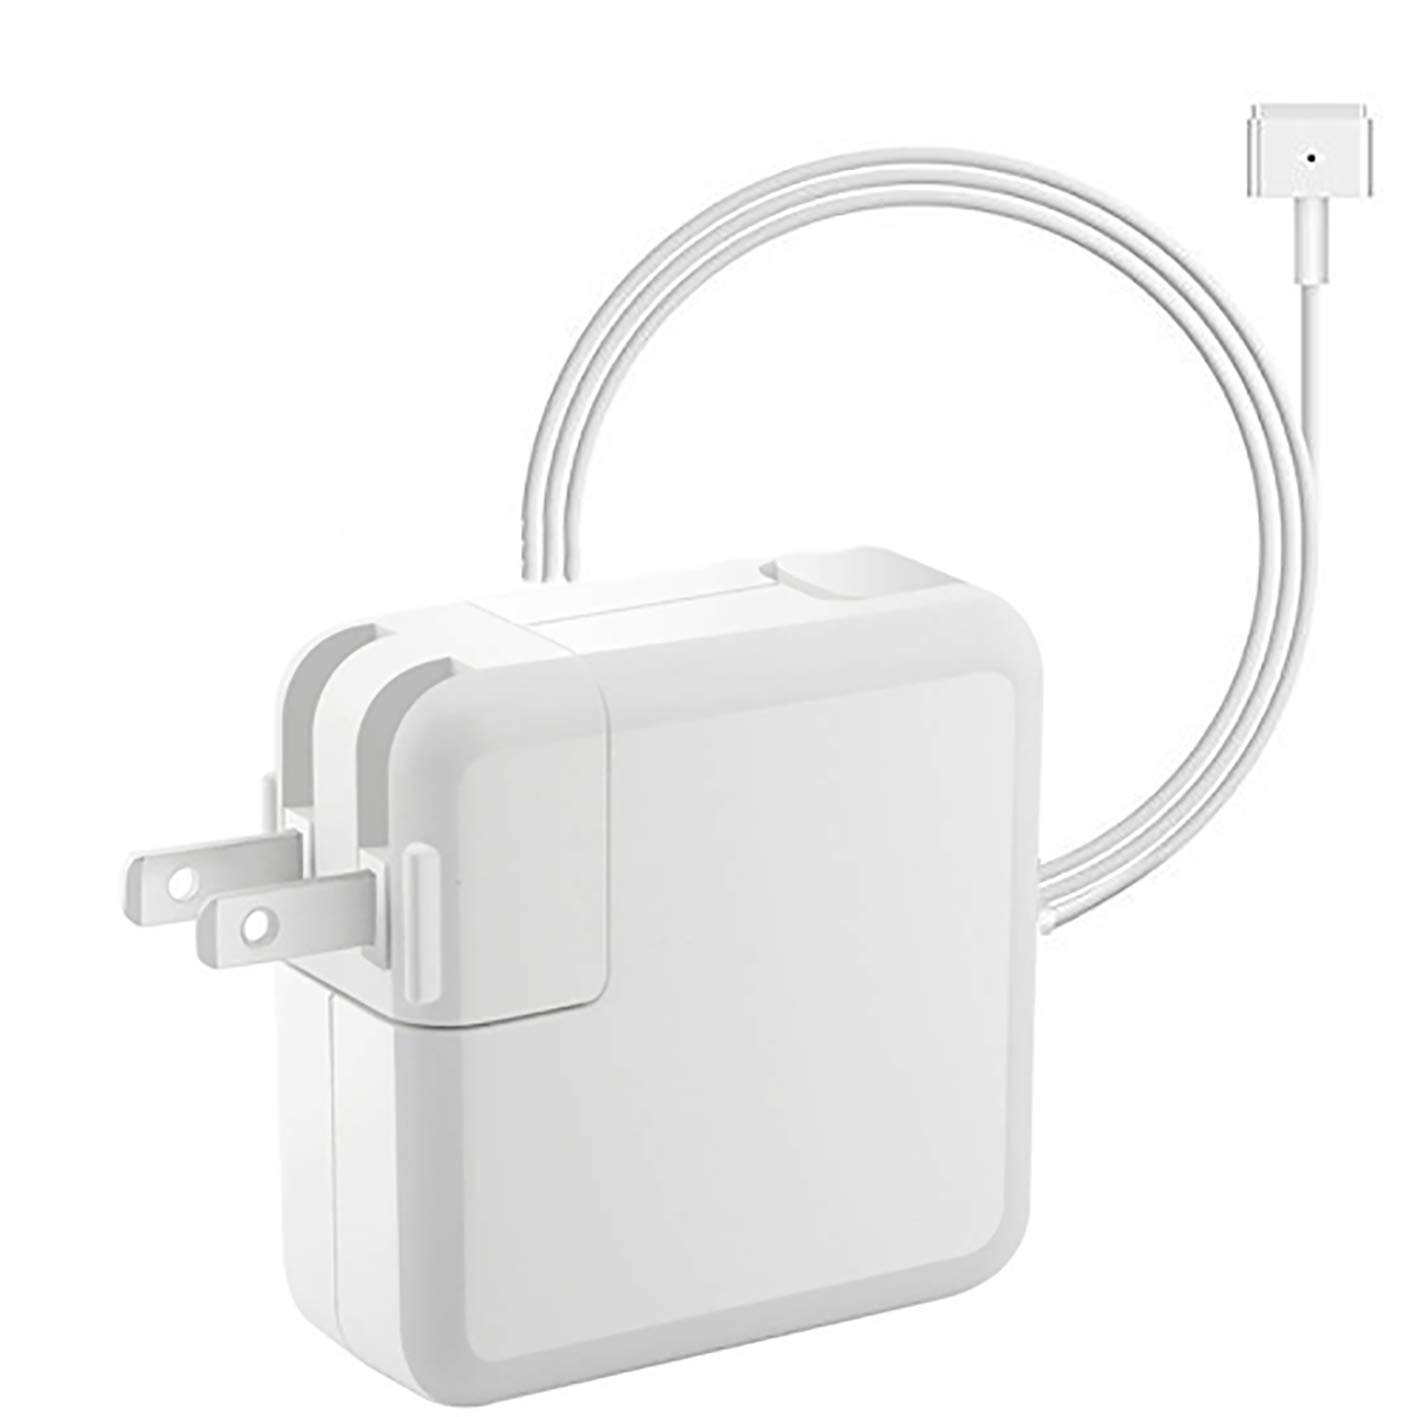 SpedCGR Adapter 60W T-tip Magsafe2 Charger, Replacement for MacBook Pro 13-Inch 60W Adapter for MacBook Pro Model After 2012